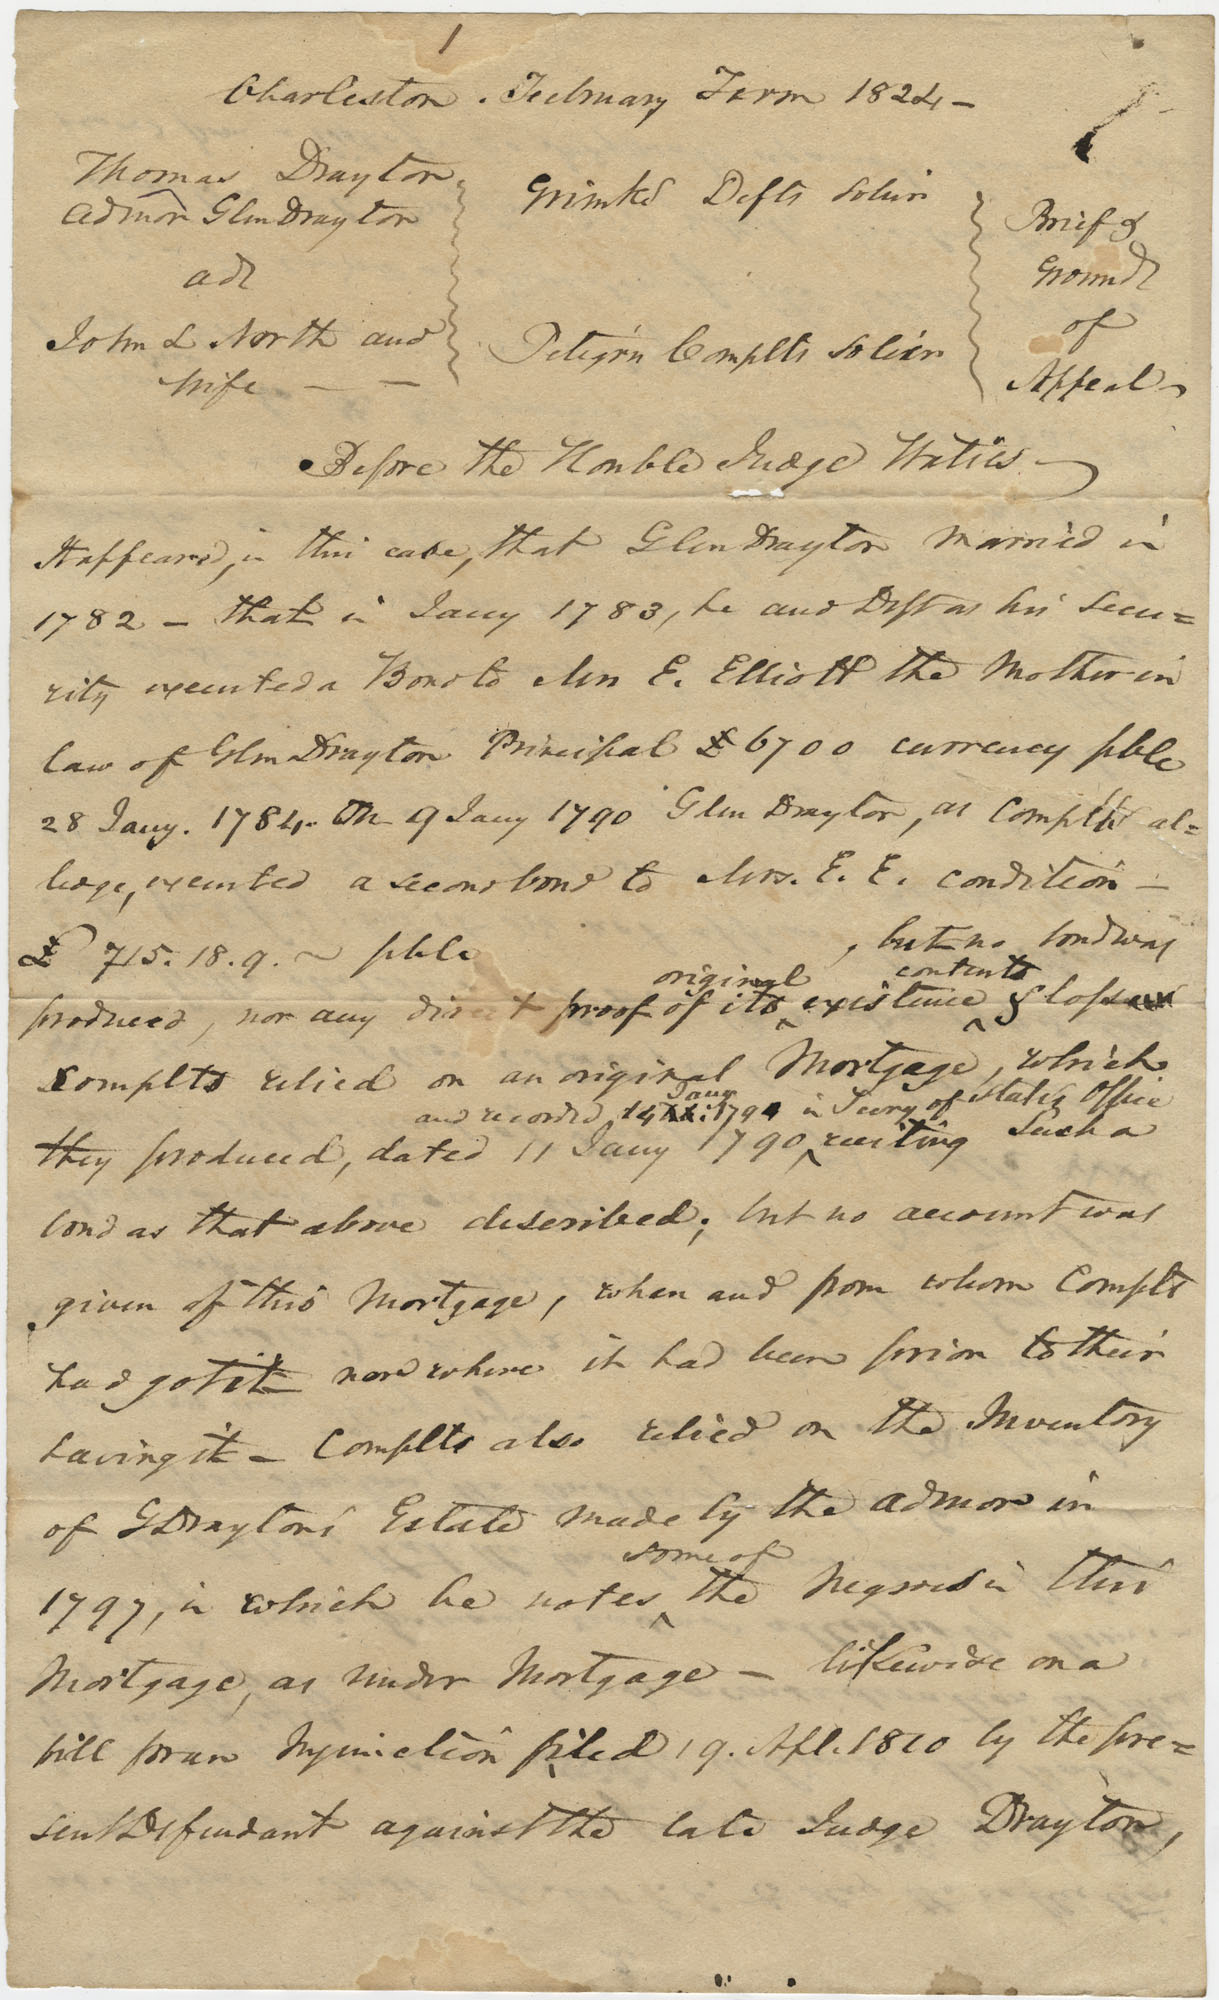 Legal Grounds of Appeal for a court decision regarding the debt of the estate of Glen Drayton, February 1824